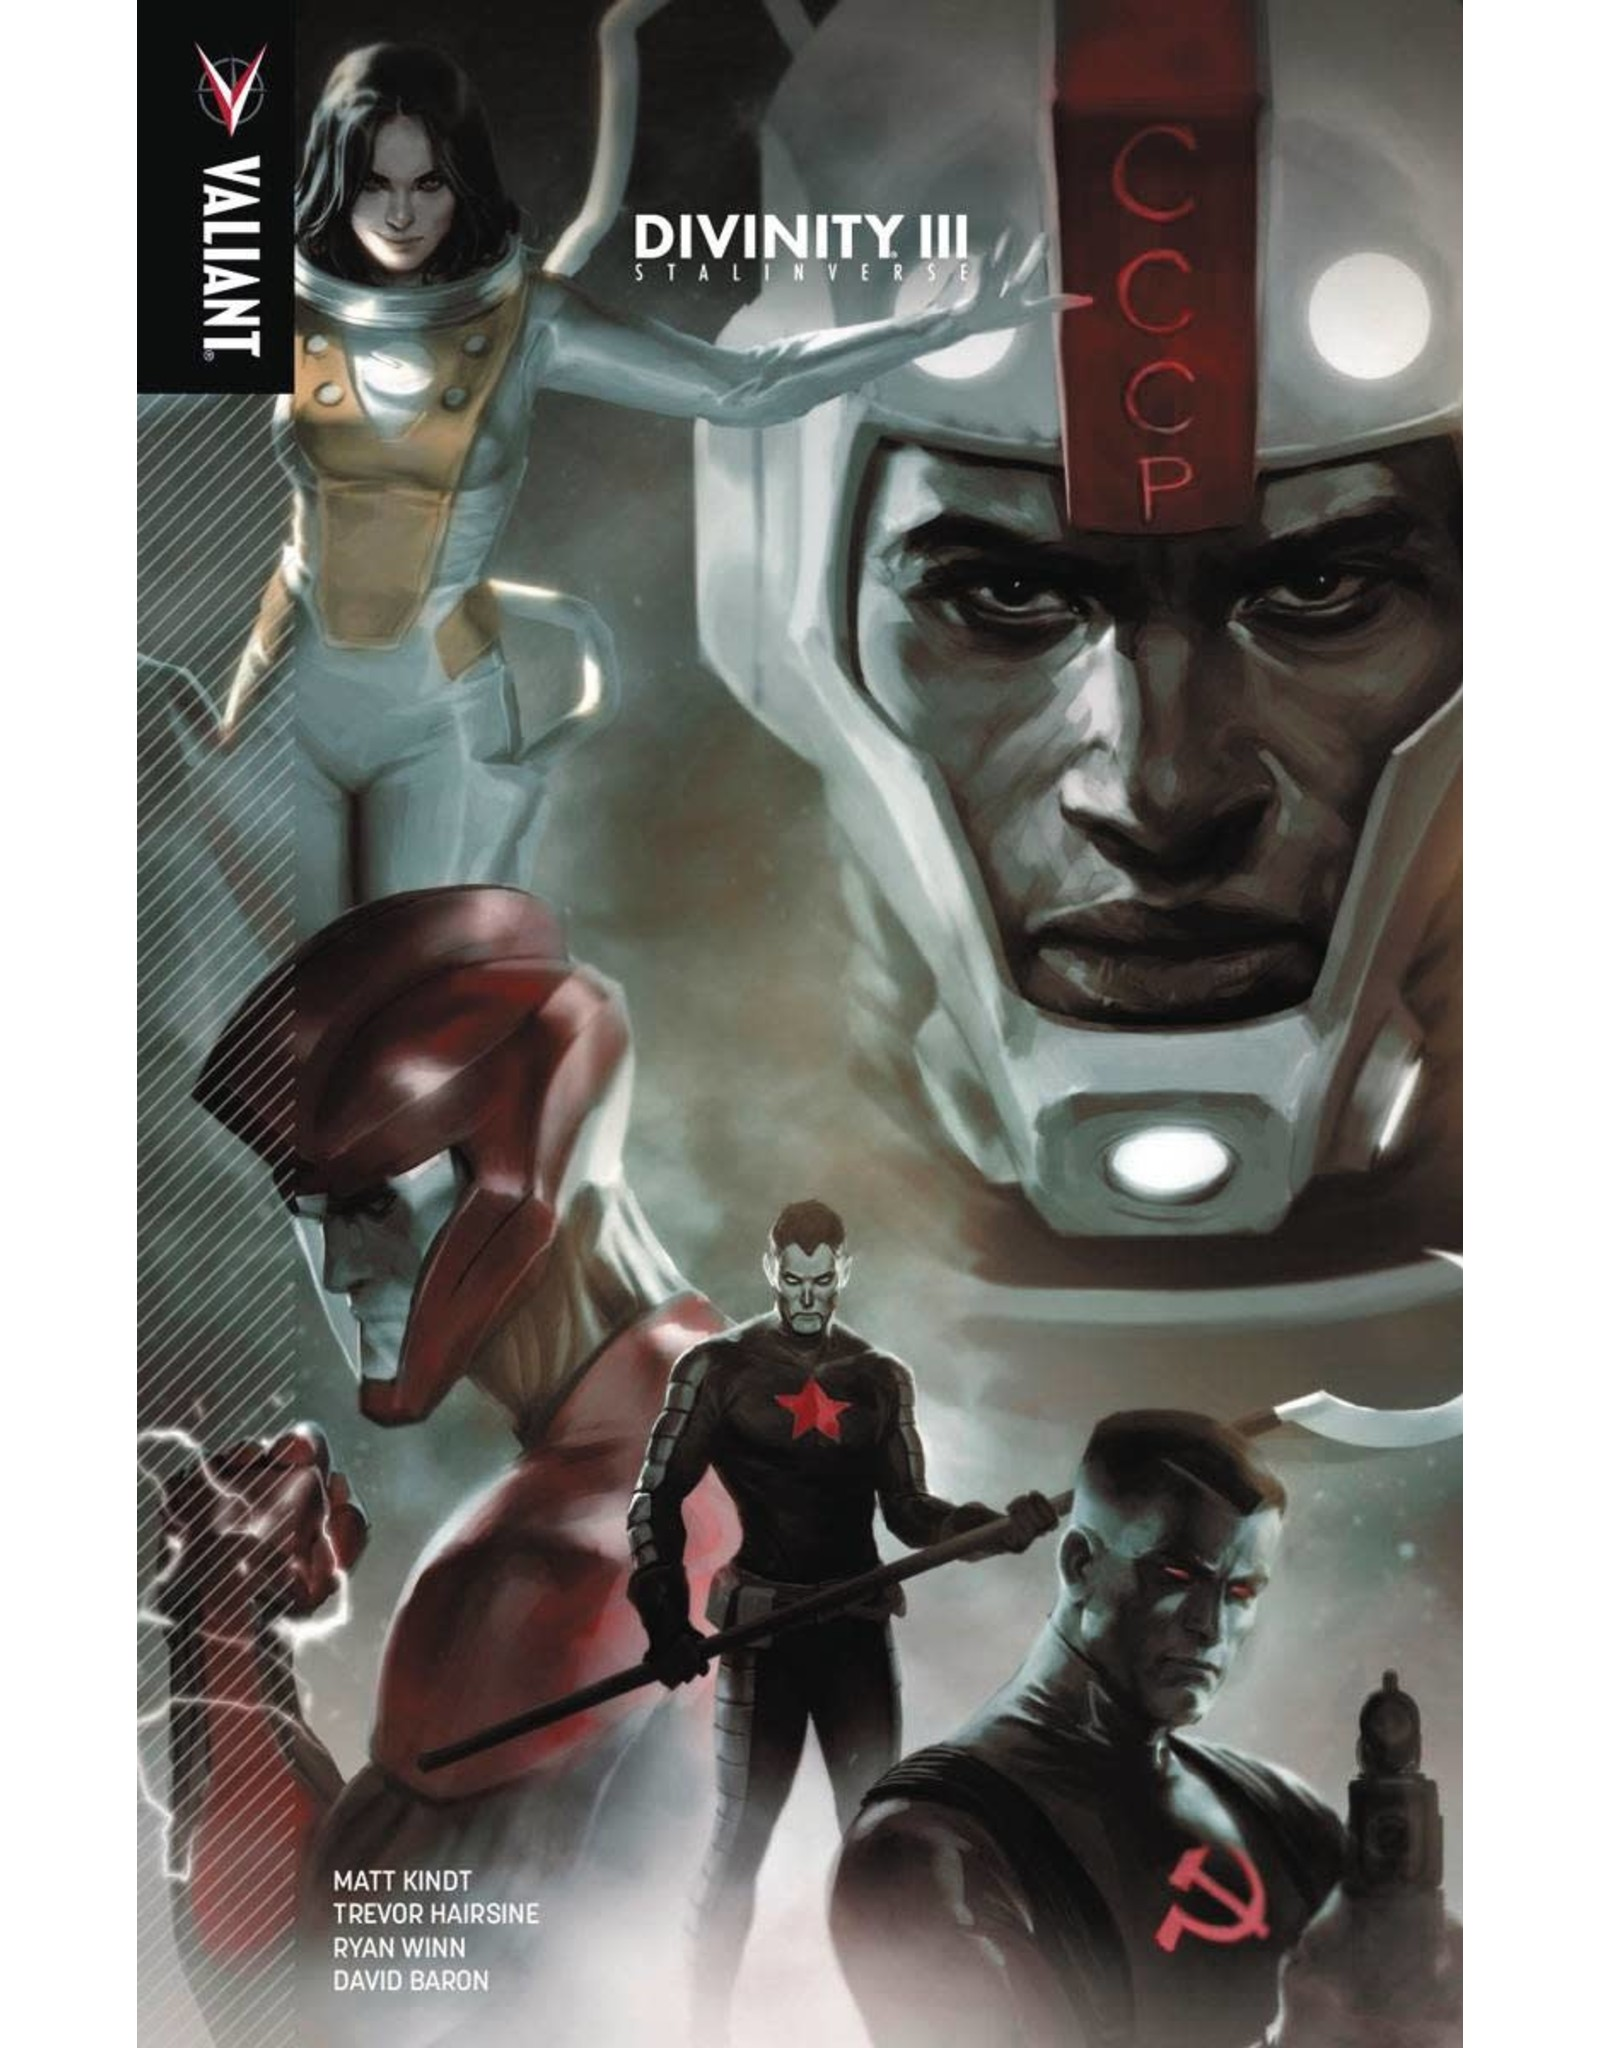 VALIANT ENTERTAINMENT LLC DIVINITY III STALINVERSE TP